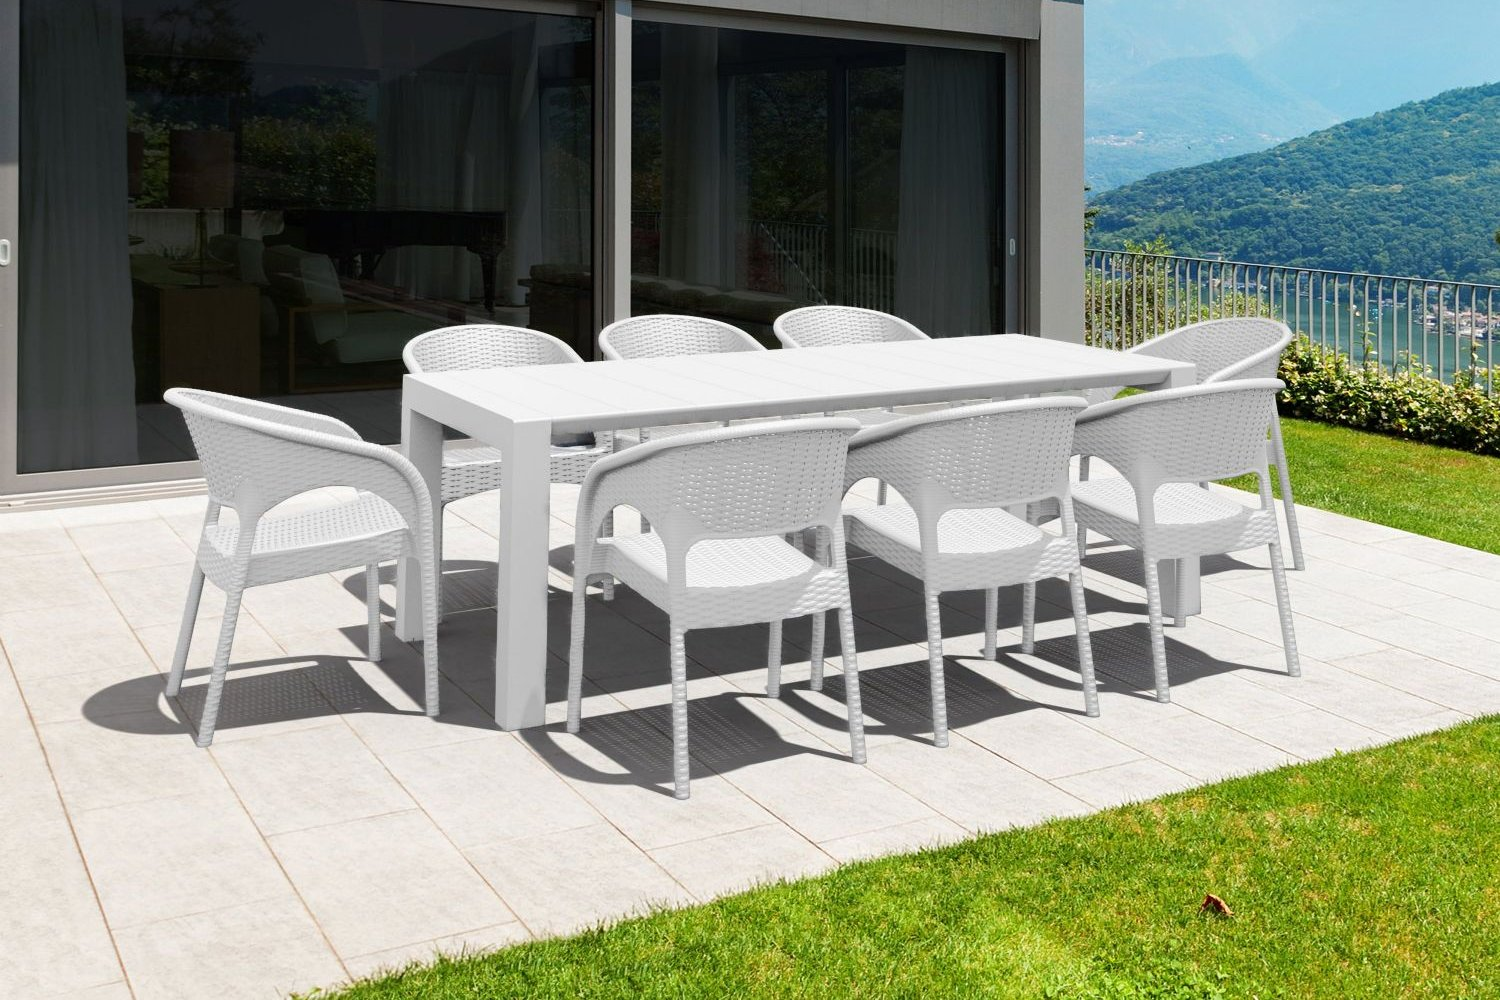 Panama Extendable Patio Dining Set 9 piece Brown ISP8083S-BR - 3